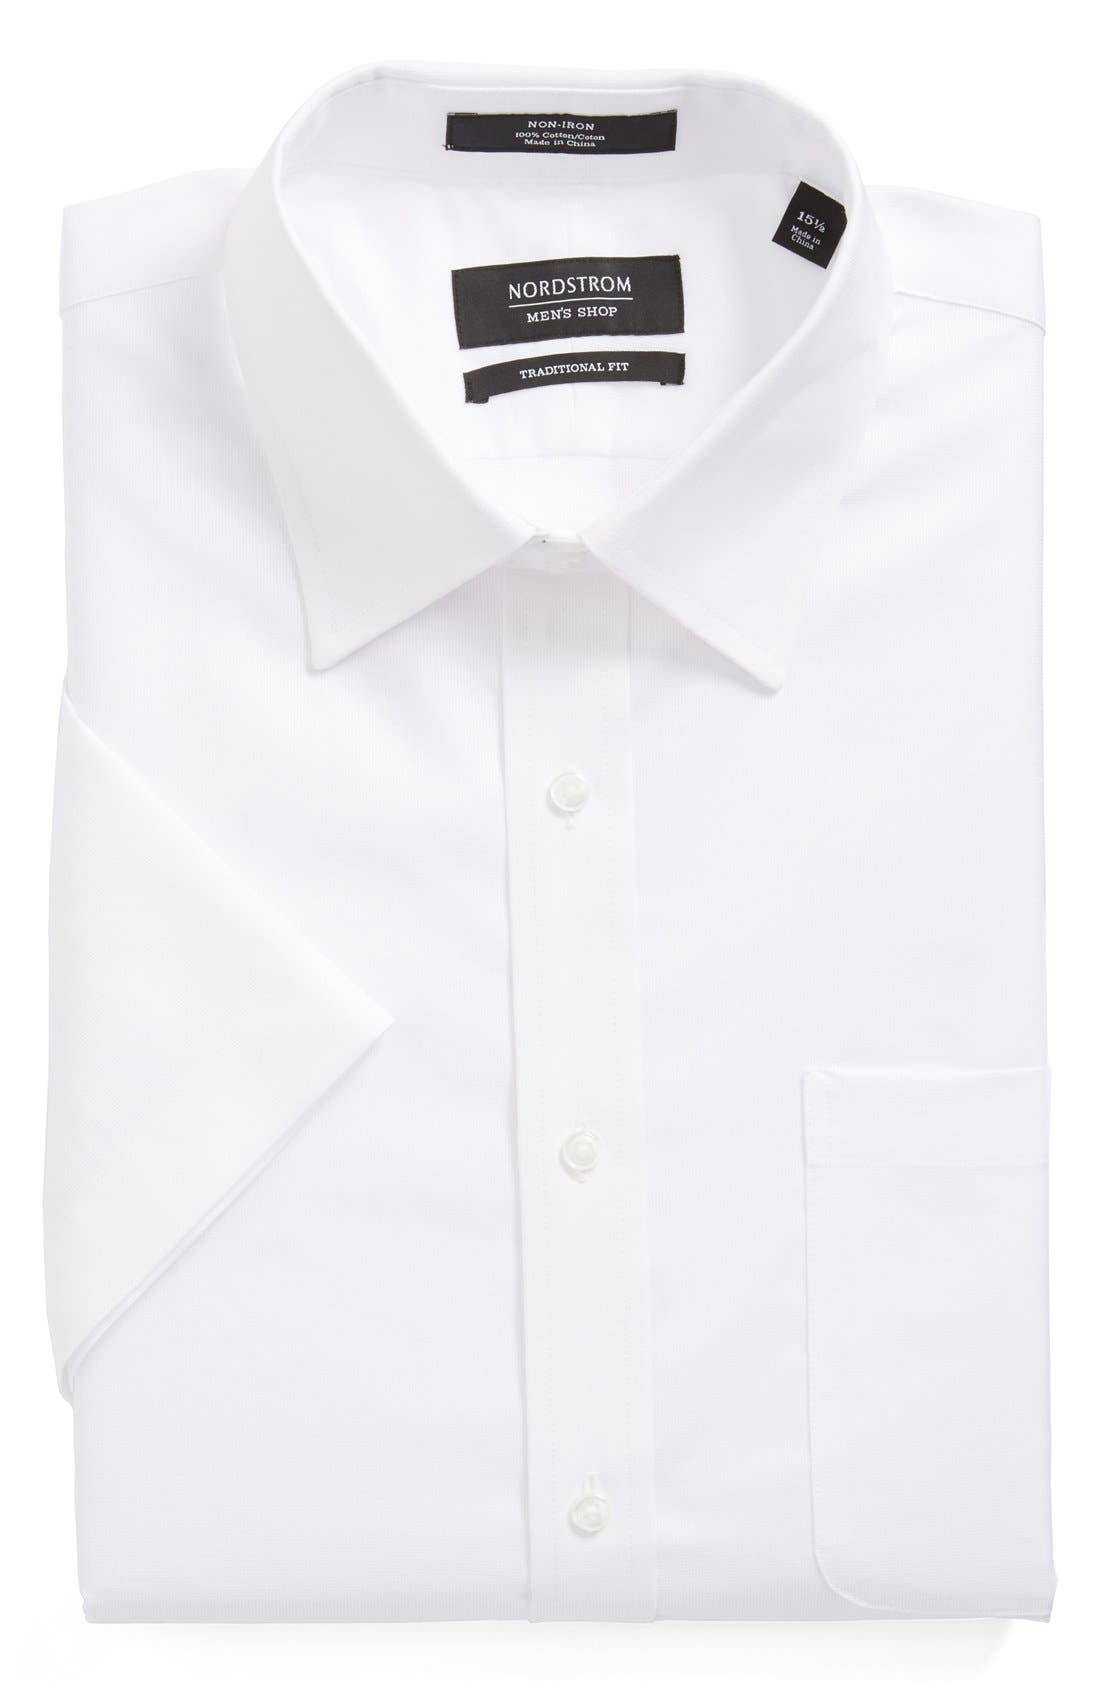 Main Image - Nordstrom Men's Shop Traditional Fit Non-Iron Short Sleeve Dress Shirt